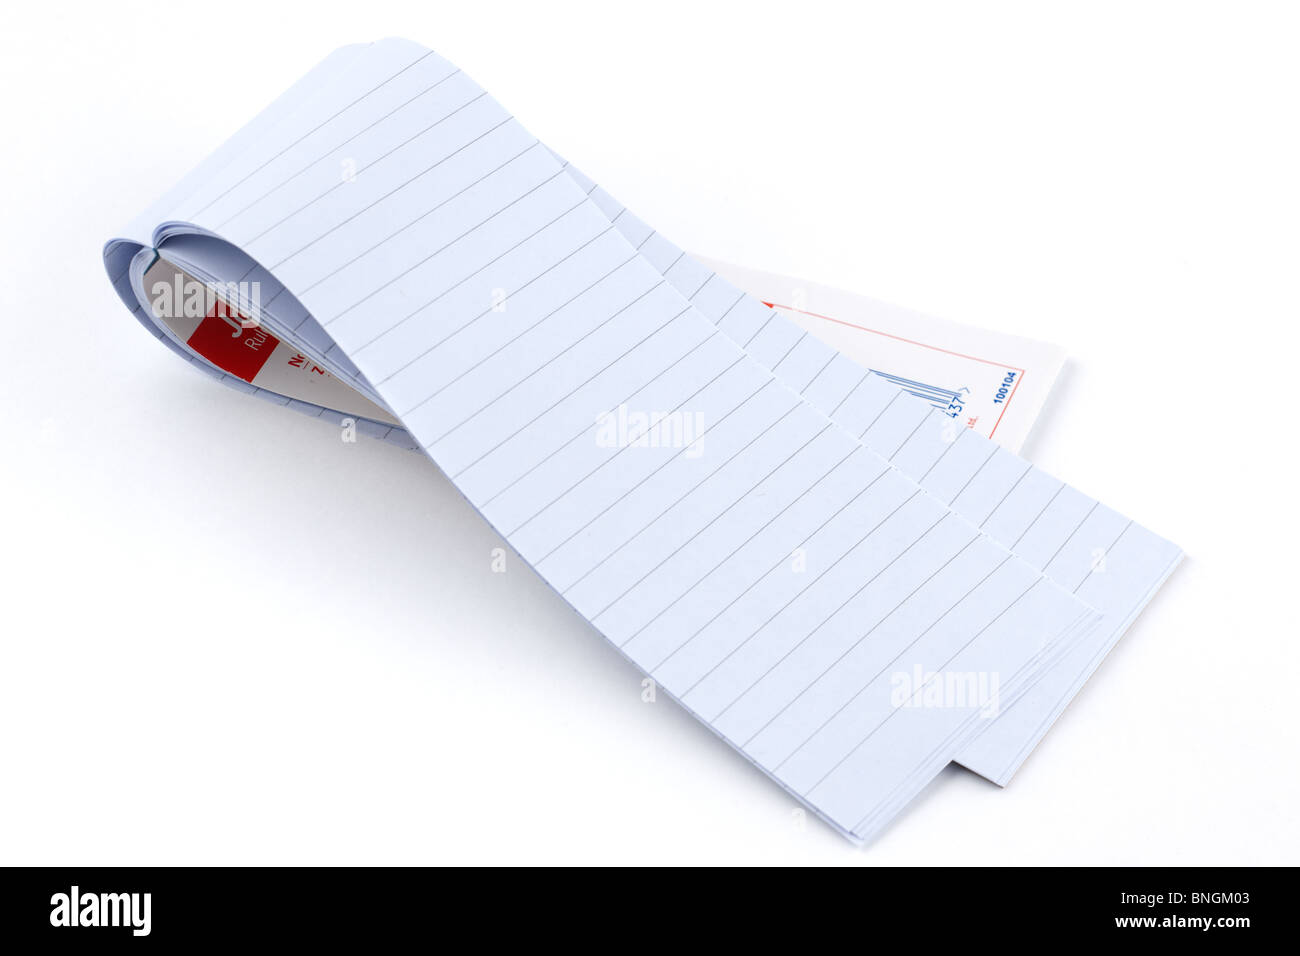 Ruled 50 sheet long folded paper Jotter pad - Stock Image